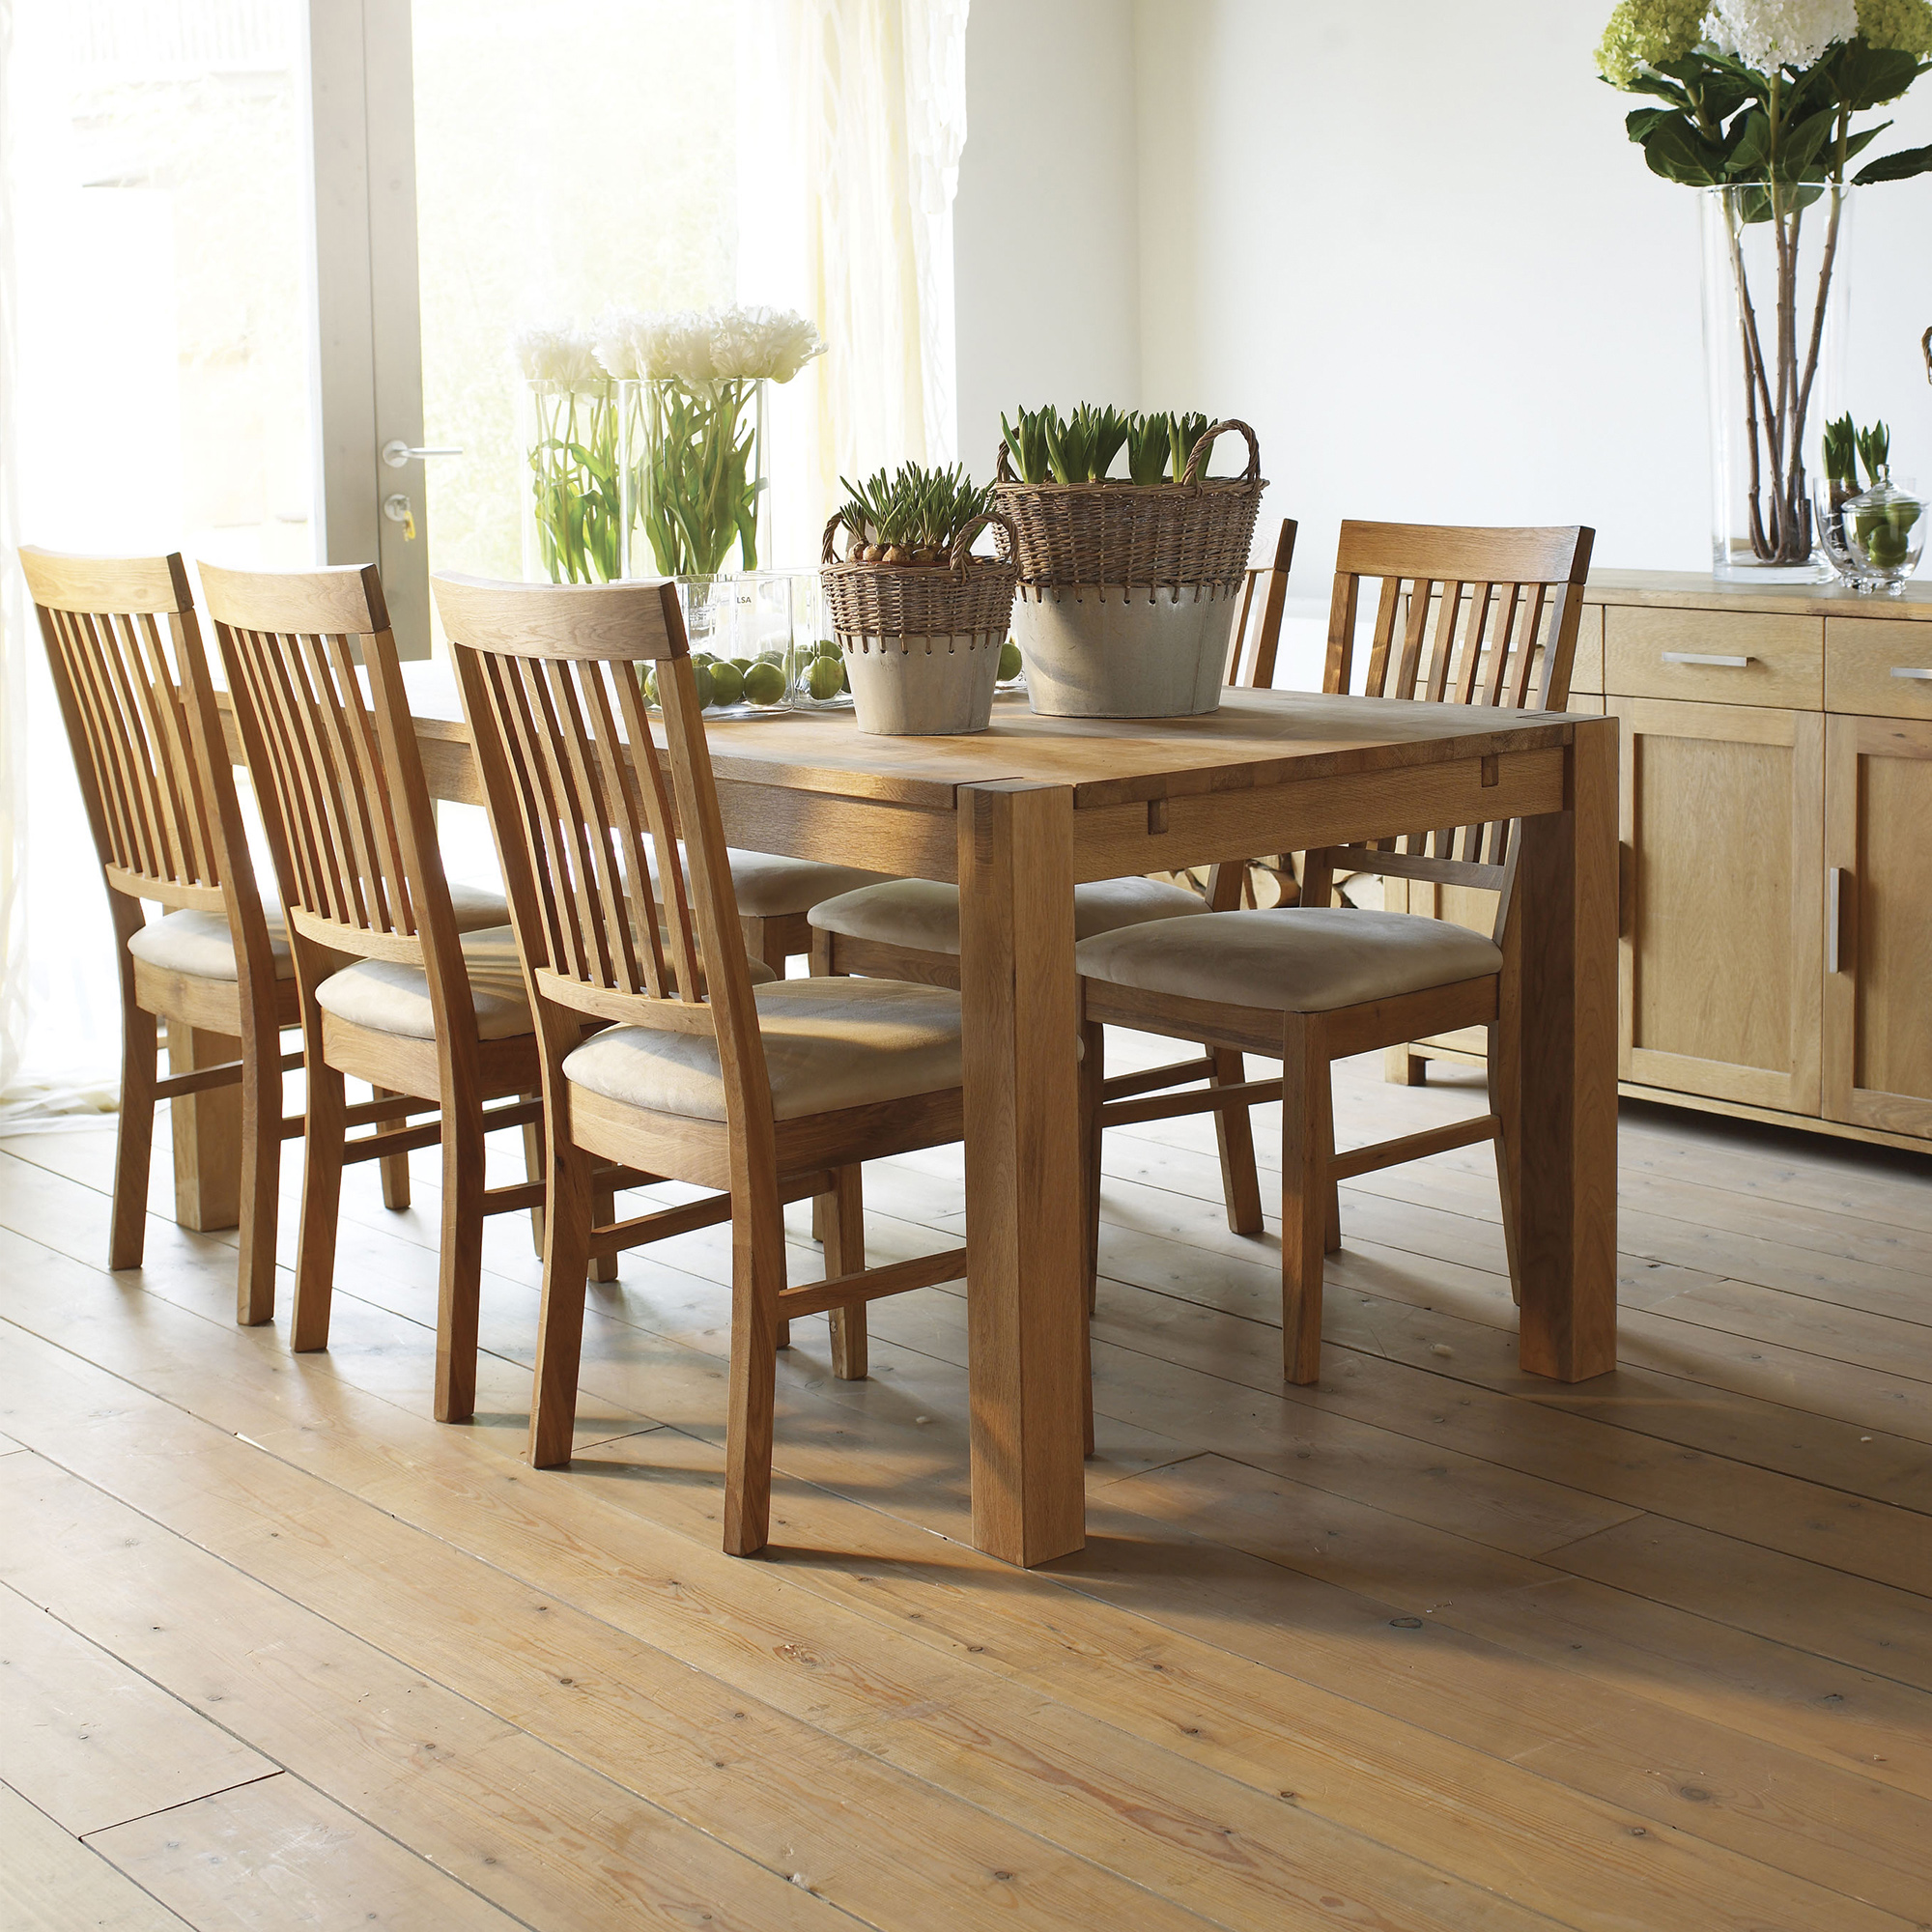 Royal Oak Oak Dining Table And 6 Chairs Fabric Fishpools